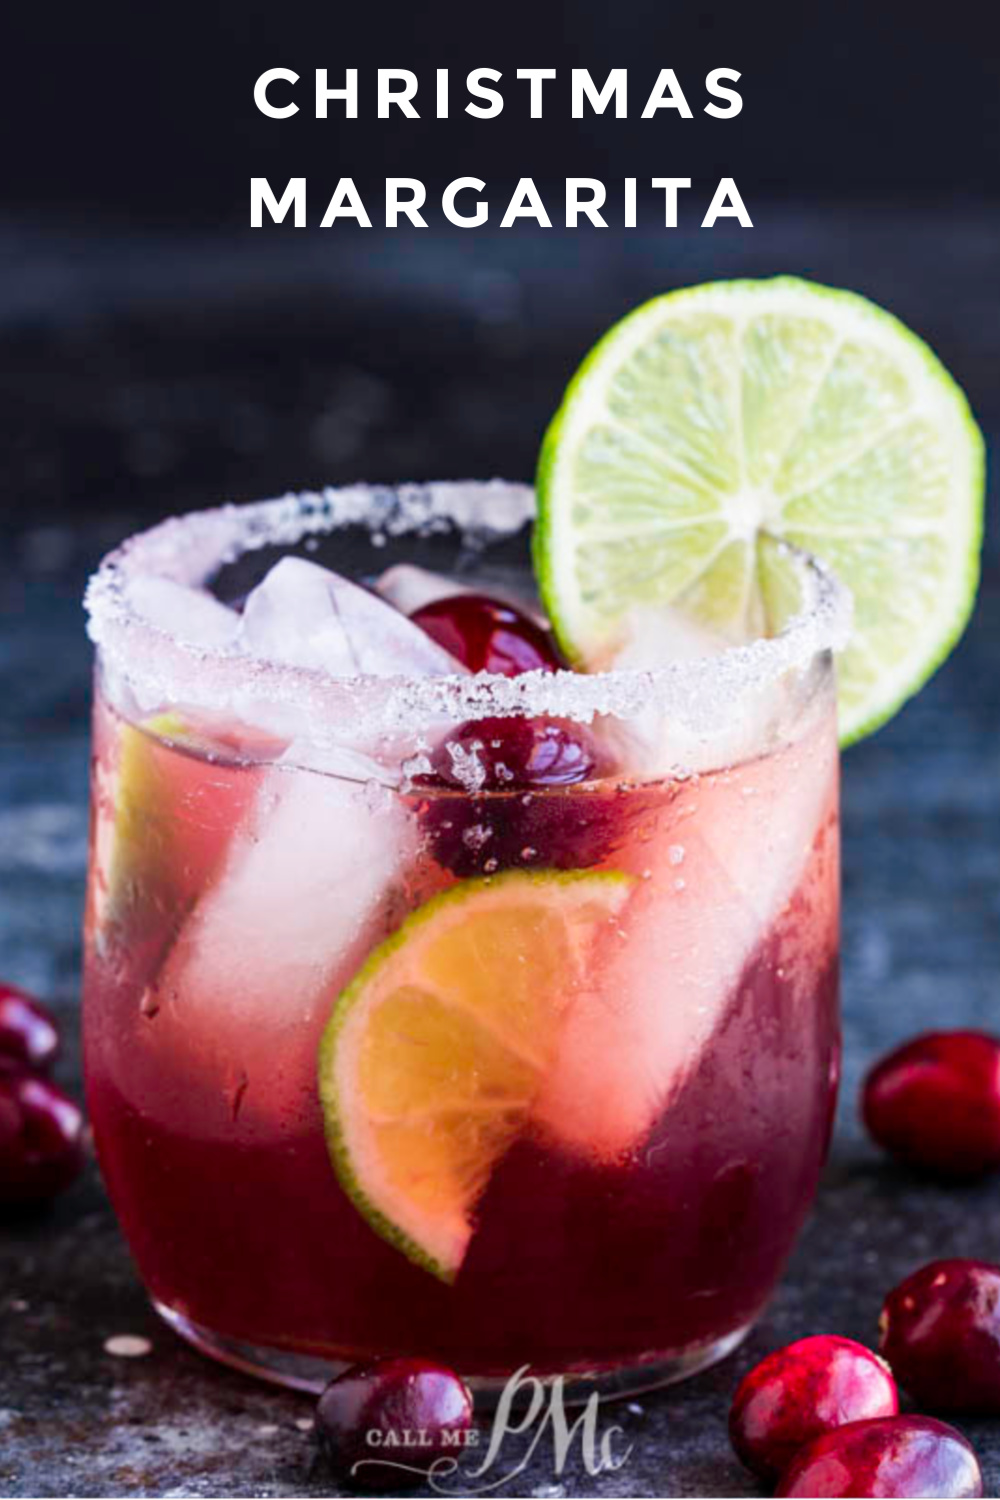 Festive Christmas Margarita Recipe is easy to make, tastes delicious, and the perfect holiday cocktail. #cocktail #recipe #drink #margarita #Christmas #tequila #cranberry